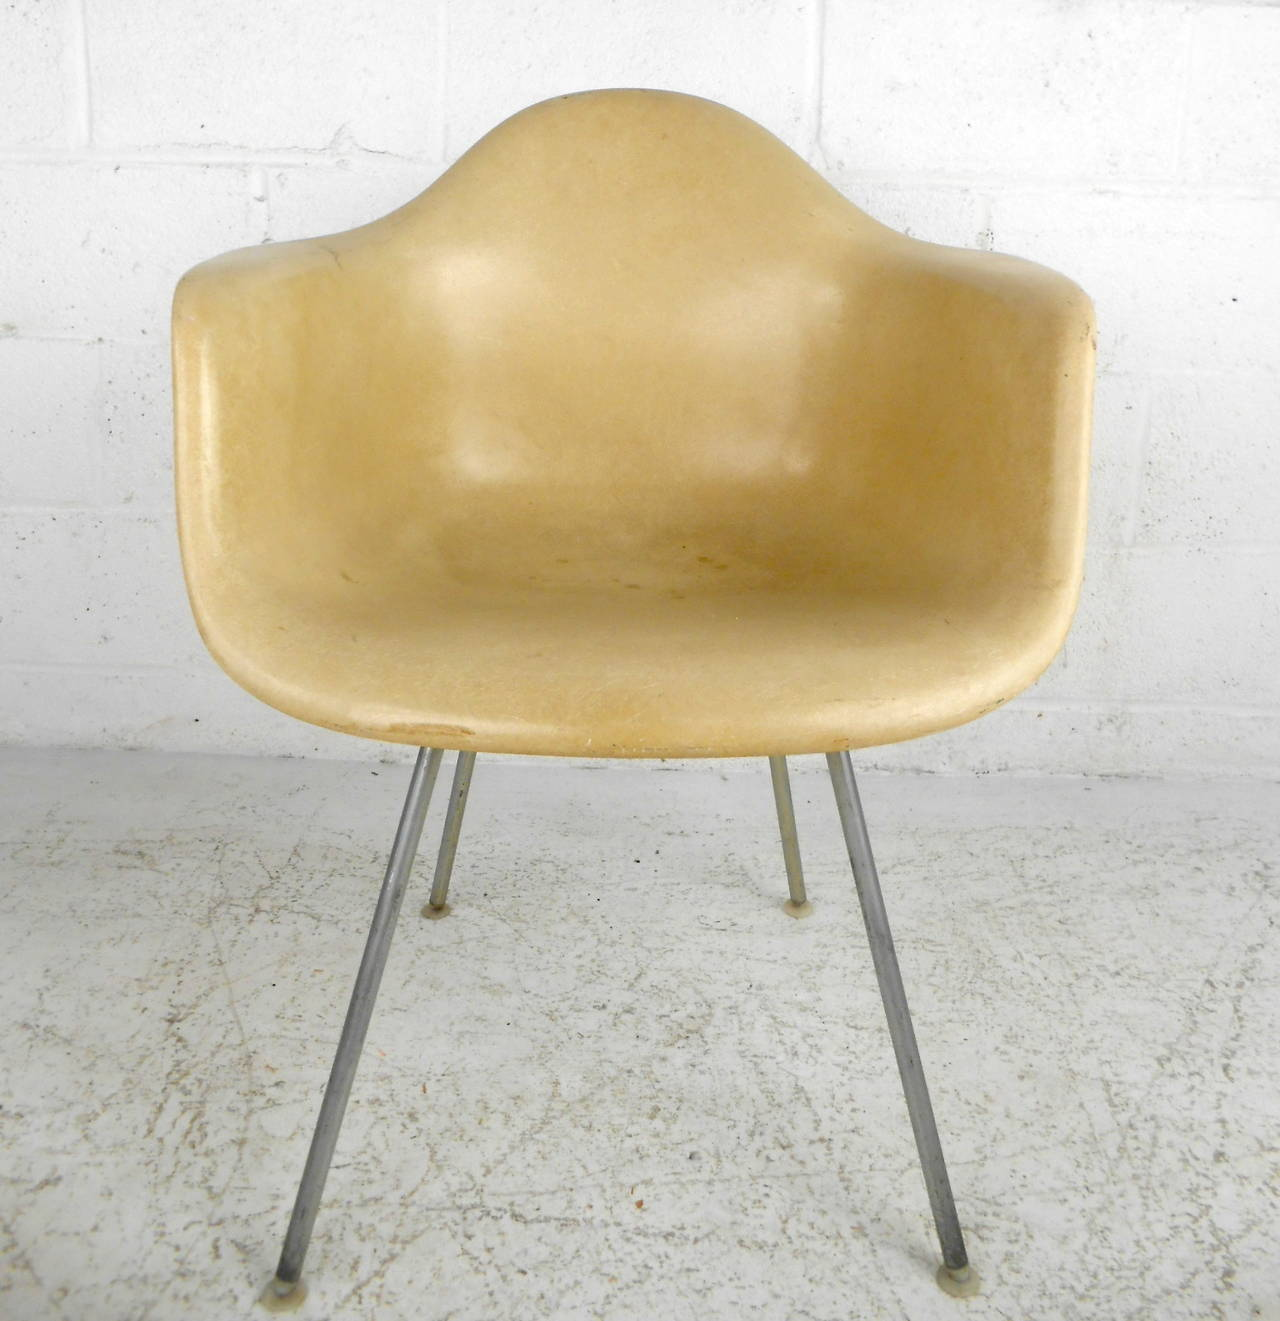 Mid century modern fiberglass shell chair by eames for herman miller for sale - Eames chair herman miller ...